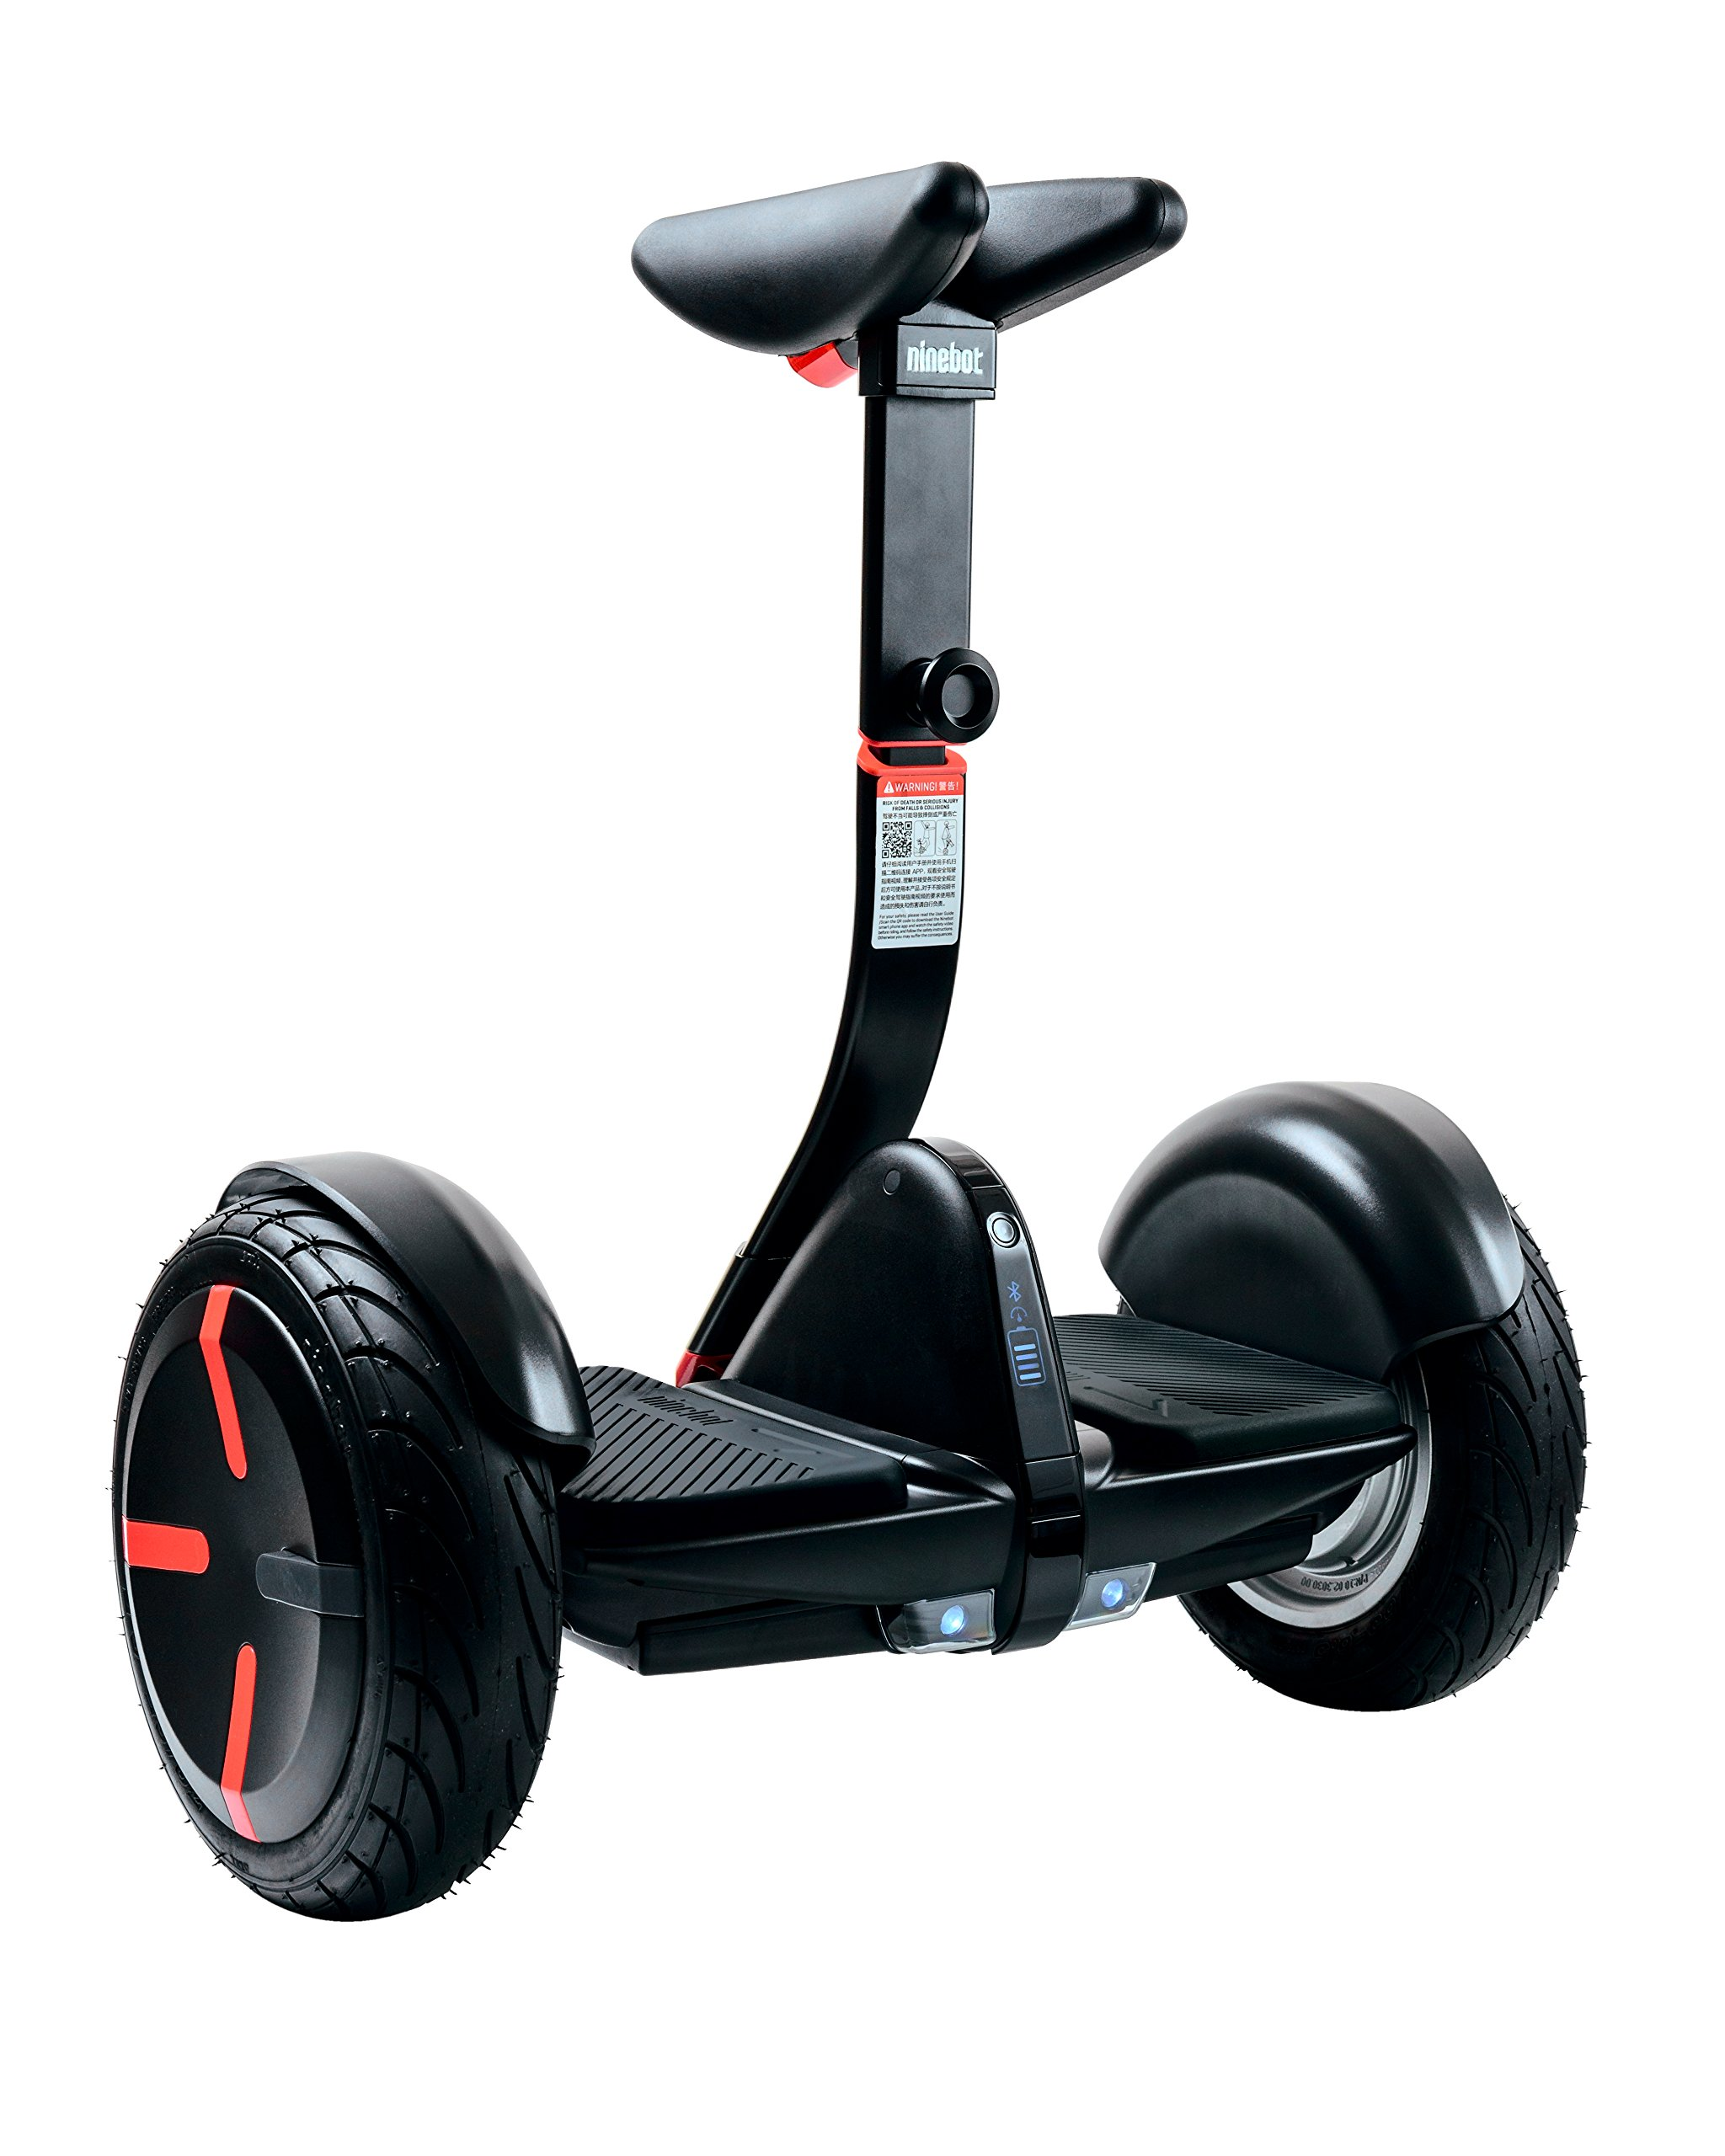 SEGWAY miniPRO Smart Self-Balancing Transporter | Adjustable and Removeable Steering Bar, 10.5-Inch Pneumatic Air Filled Tires, Dual 400W Motor, Mobile App, LED Lights, UL2272 Certified by Segway